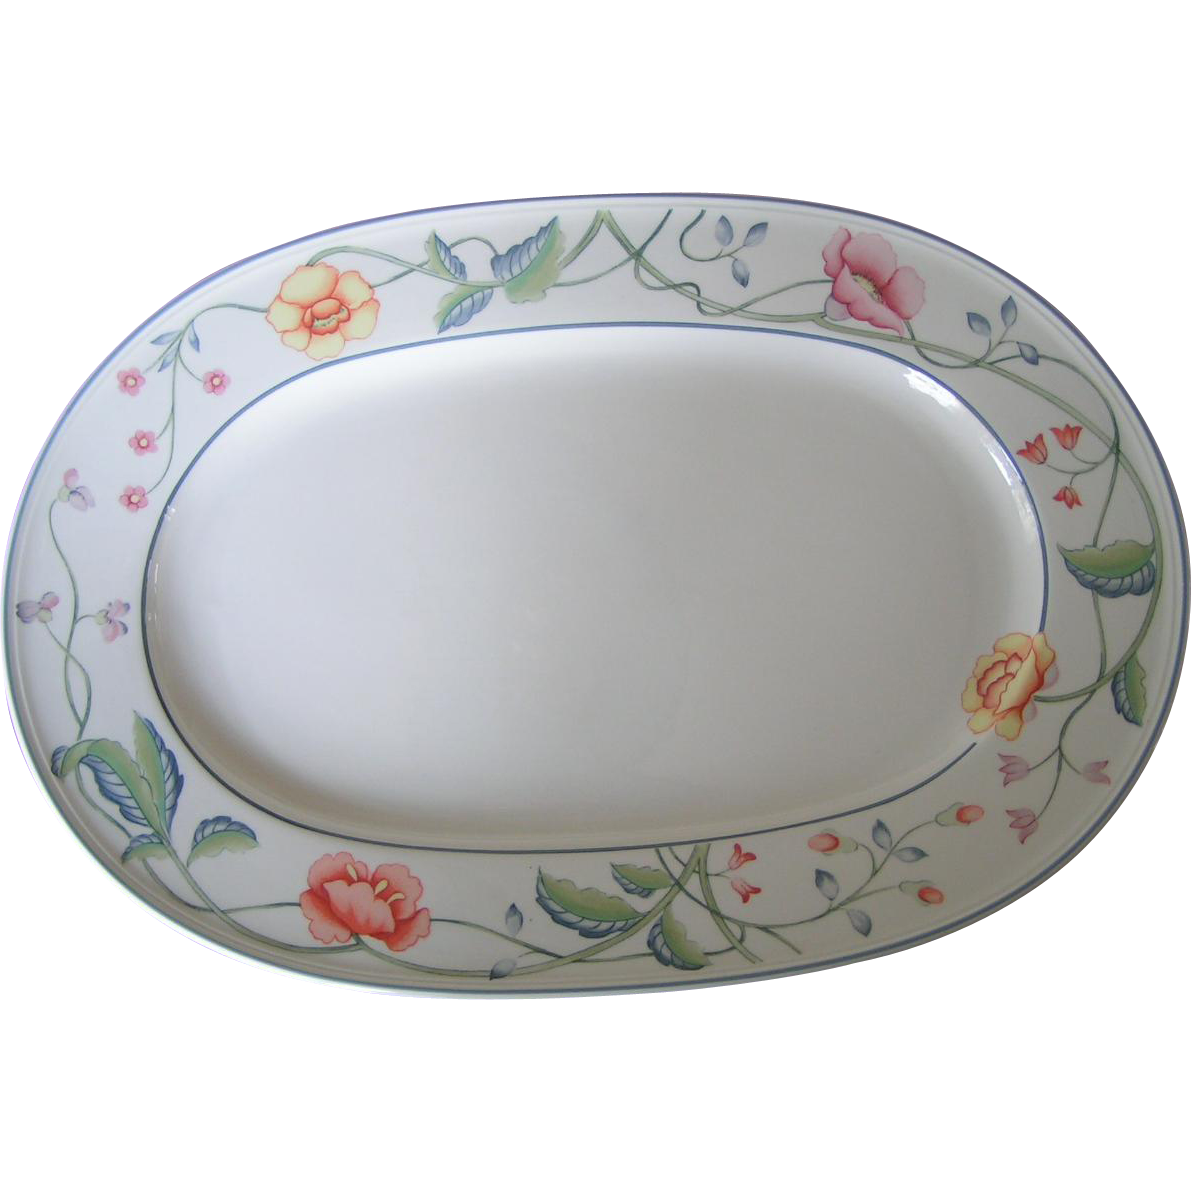 Villeroy boch large albertina platter from thefoundobject on ruby lane - Villeroy and bosh ...